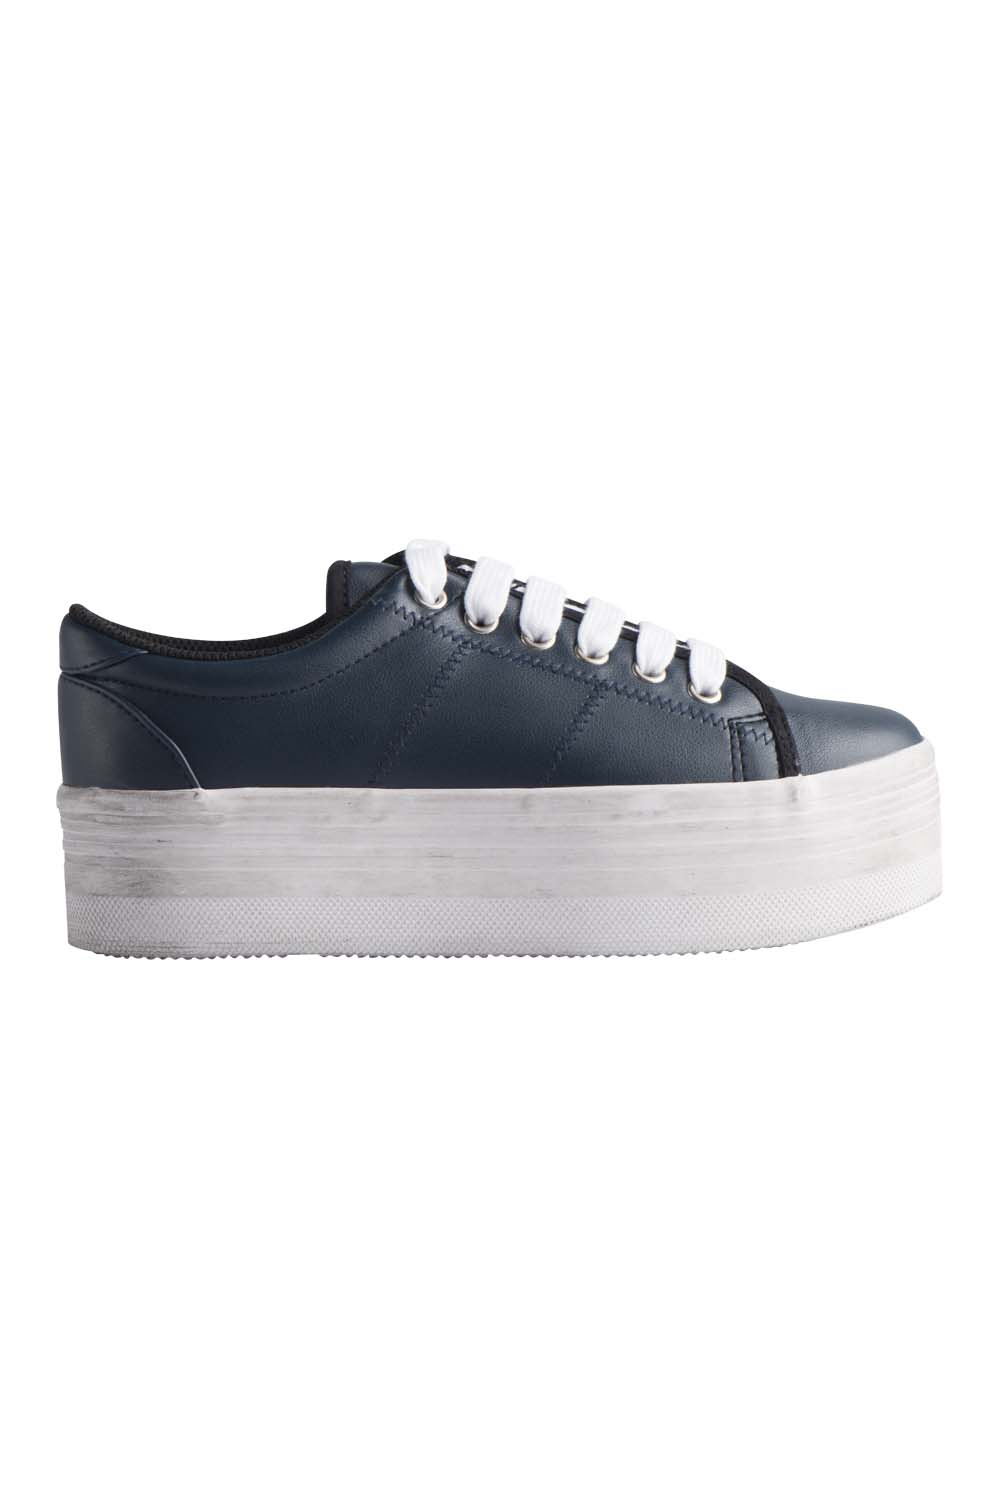 JEFFREY CAMPBELL SNEAKERS - ZOMG OCEAN LEATHER.jpg